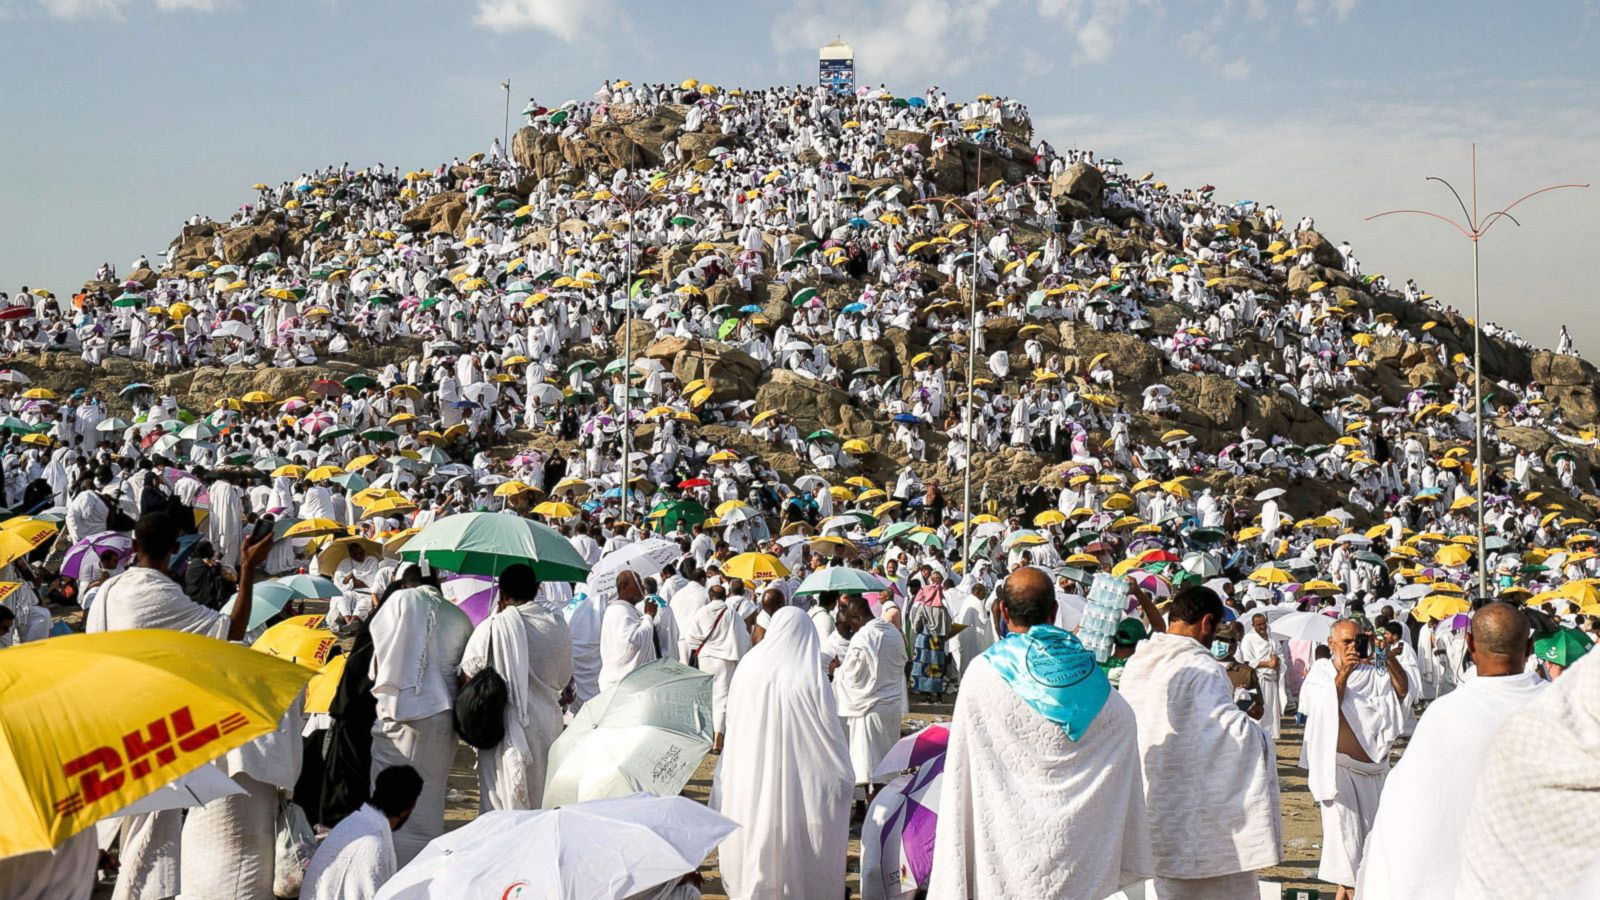 When is Hajj and what is it? Here's what you need to know - ABC News